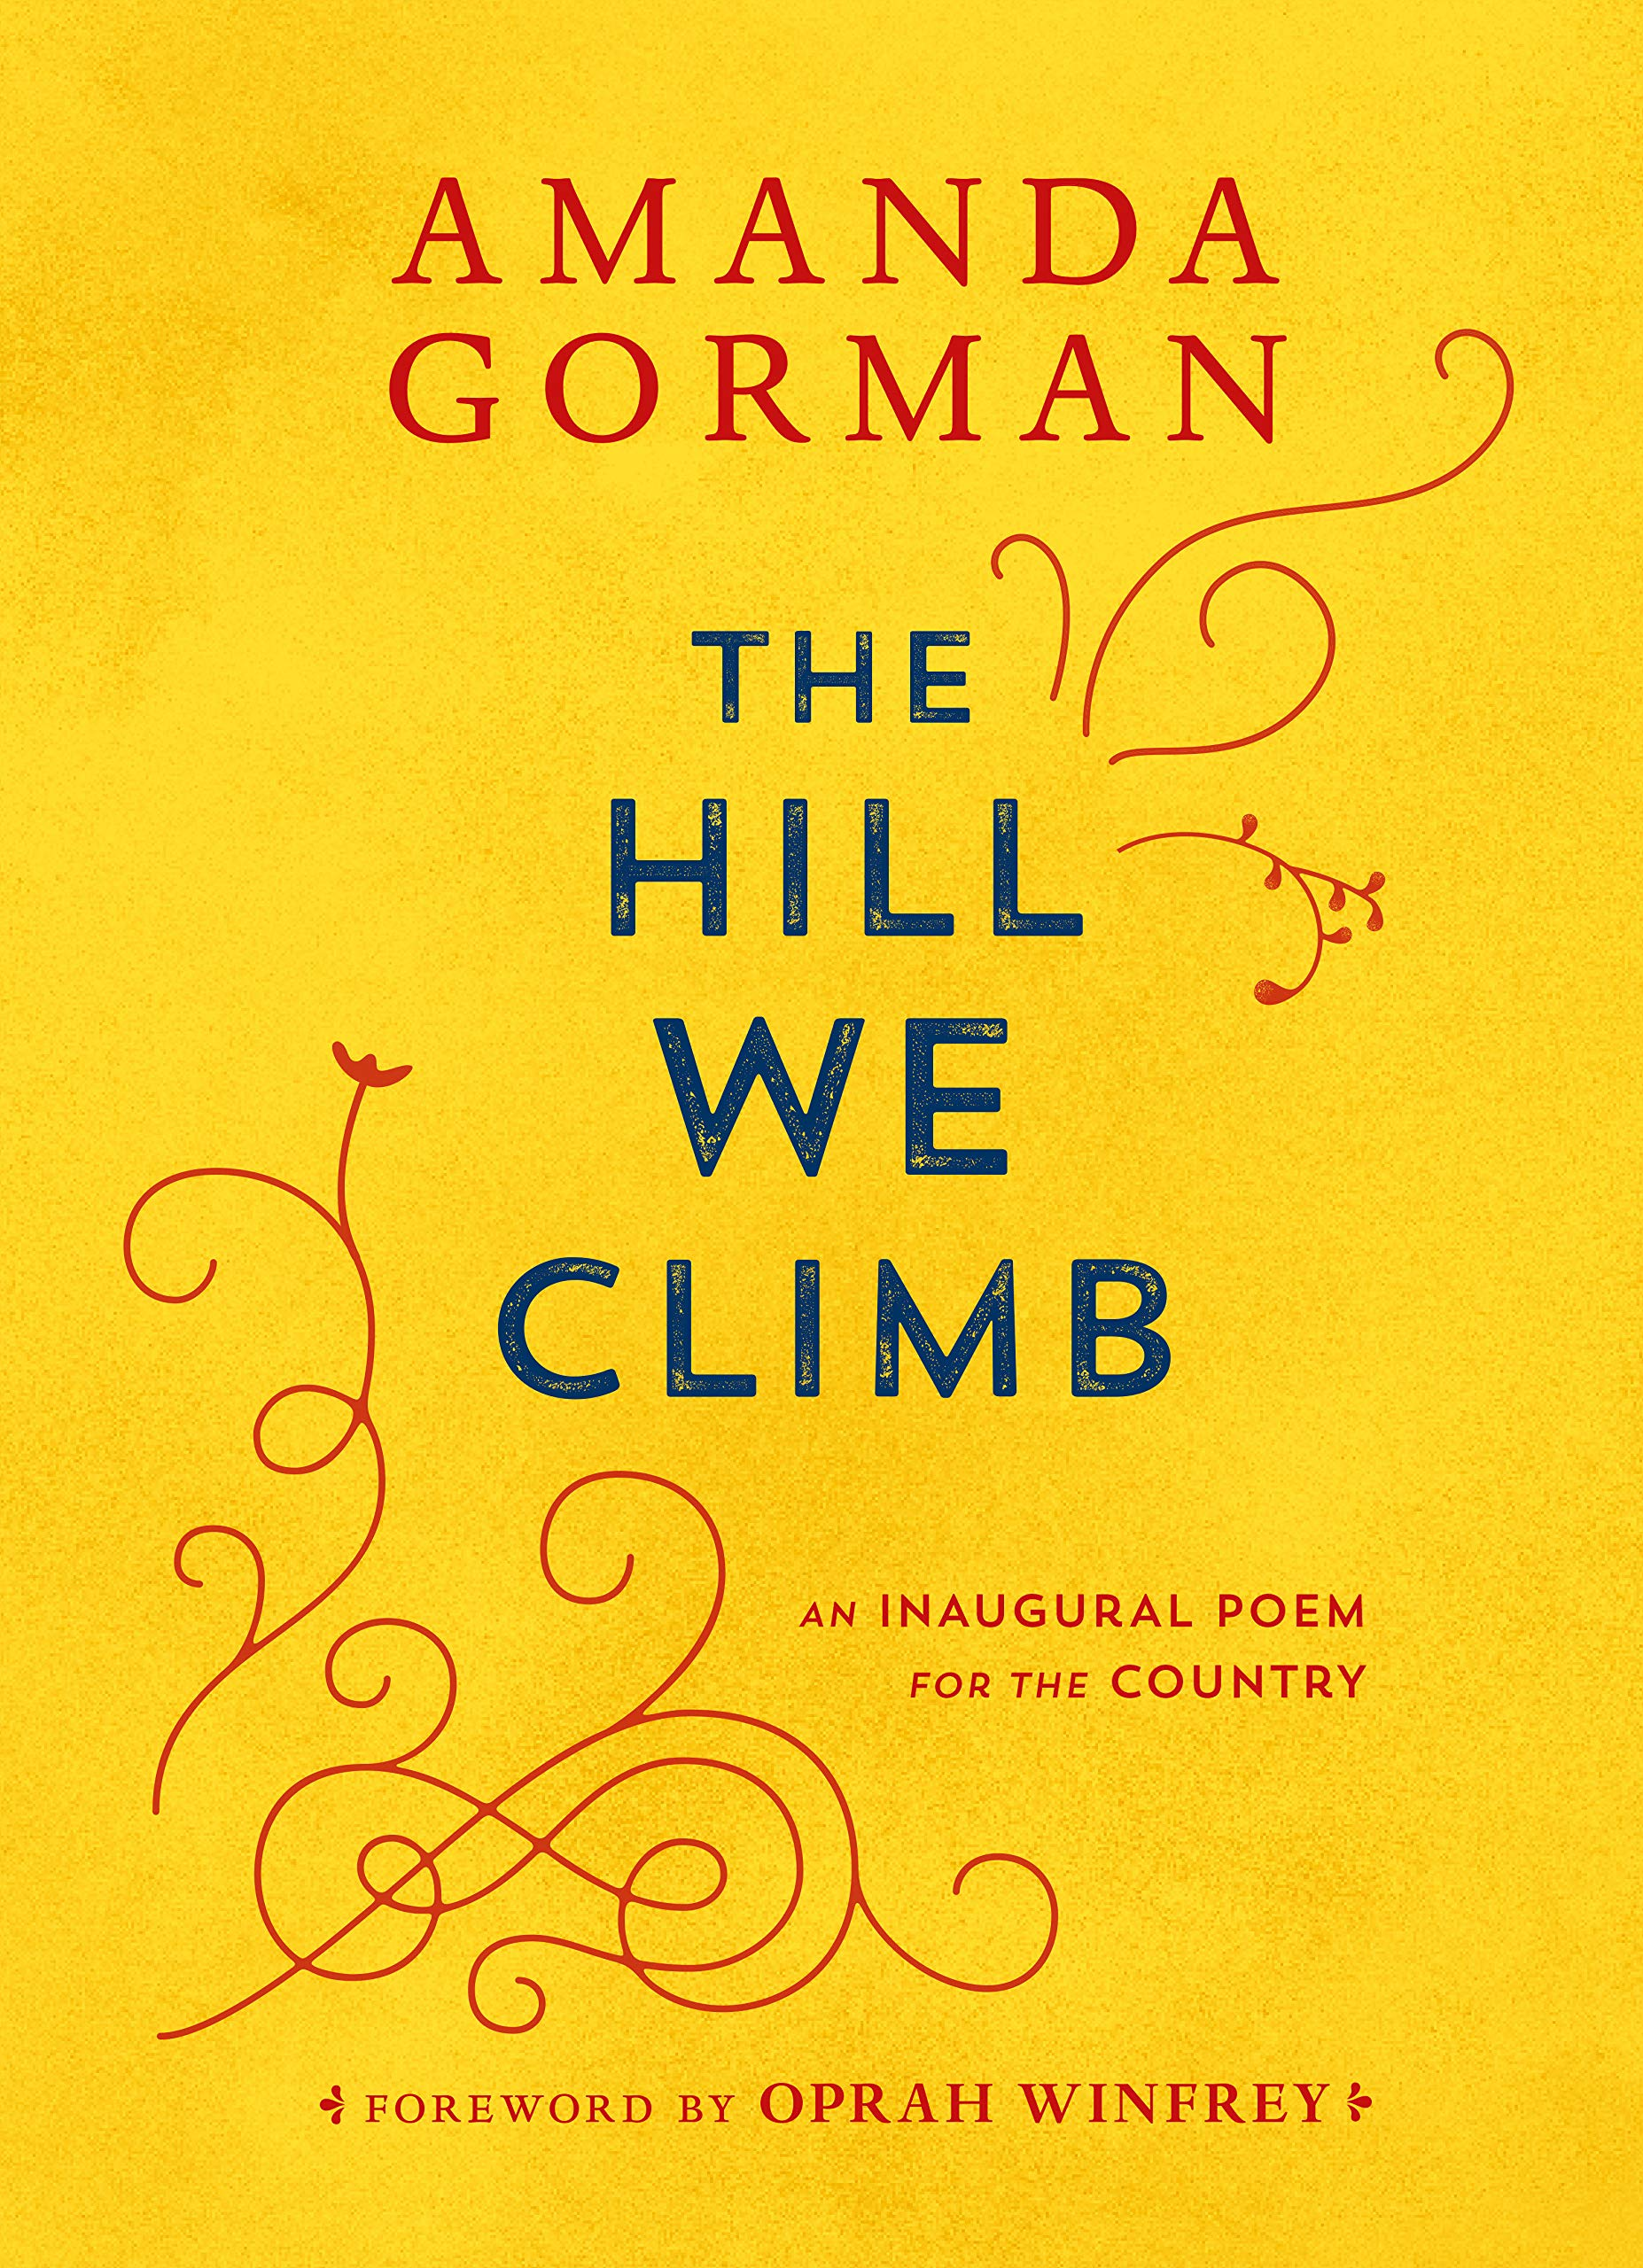 Amazon.com: The Hill We Climb: An Inaugural Poem for the Country  (9780593465271): Gorman, Amanda, Winfrey, Oprah: Books